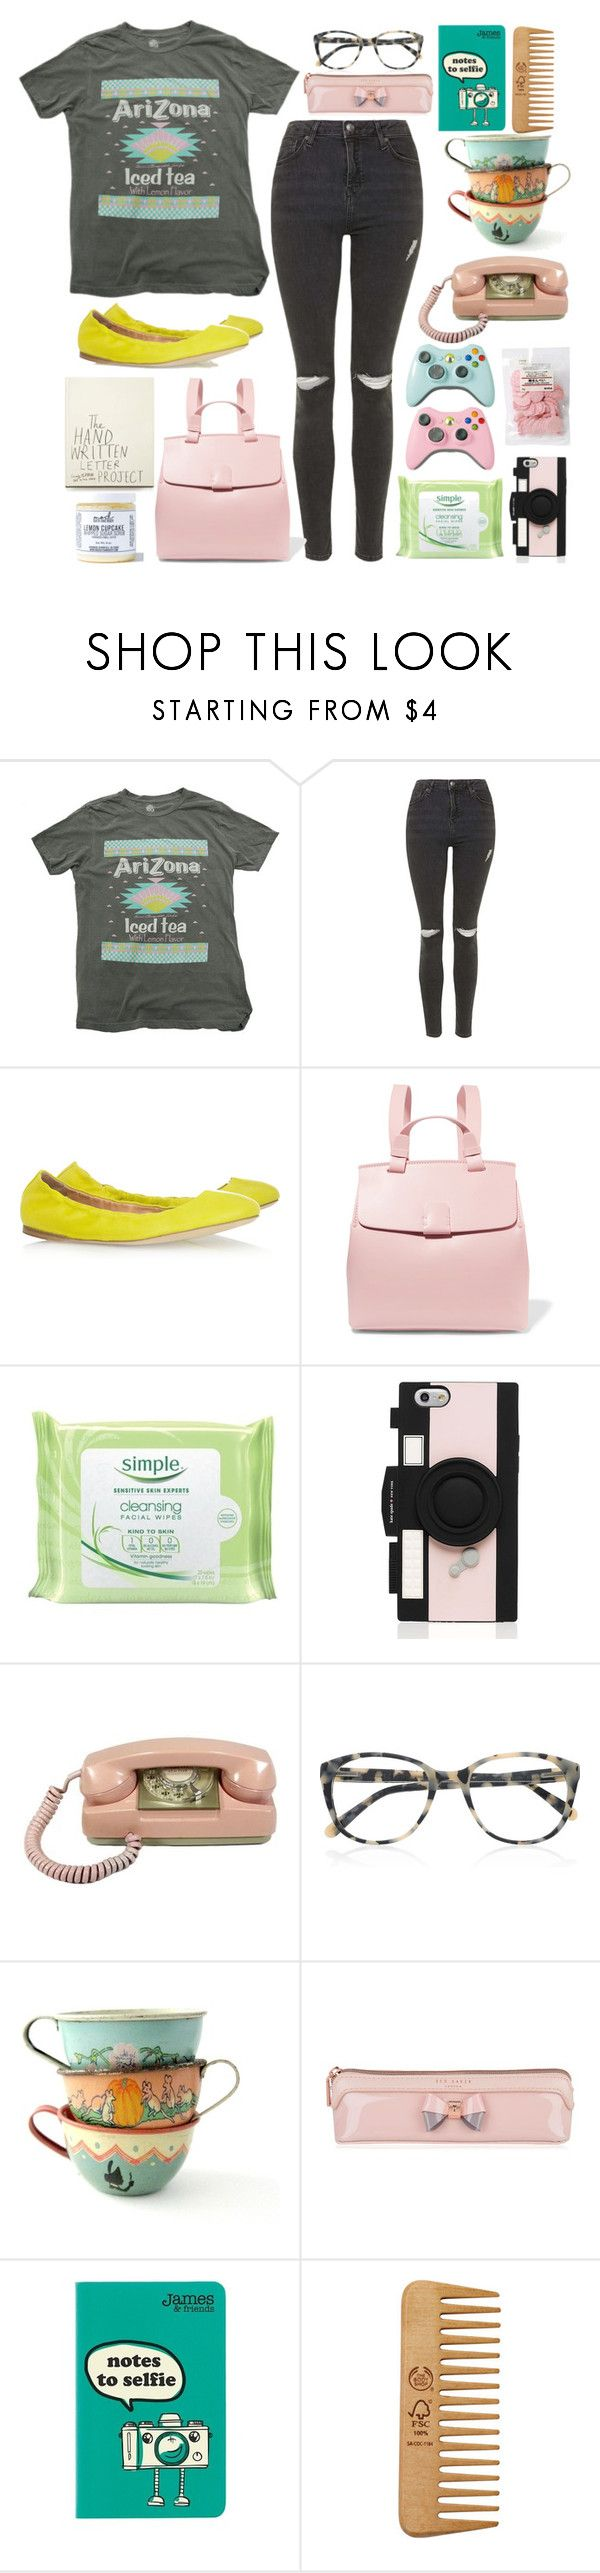 """""""Iced Tea with Lemon"""" by prettyorchid22 ❤ liked on Polyvore featuring Topshop, Jil Sander, Nico Giani, Simple, Kate Spade, Prism, Ted Baker, The Body Shop, Mod Bath and Body and chicflats"""